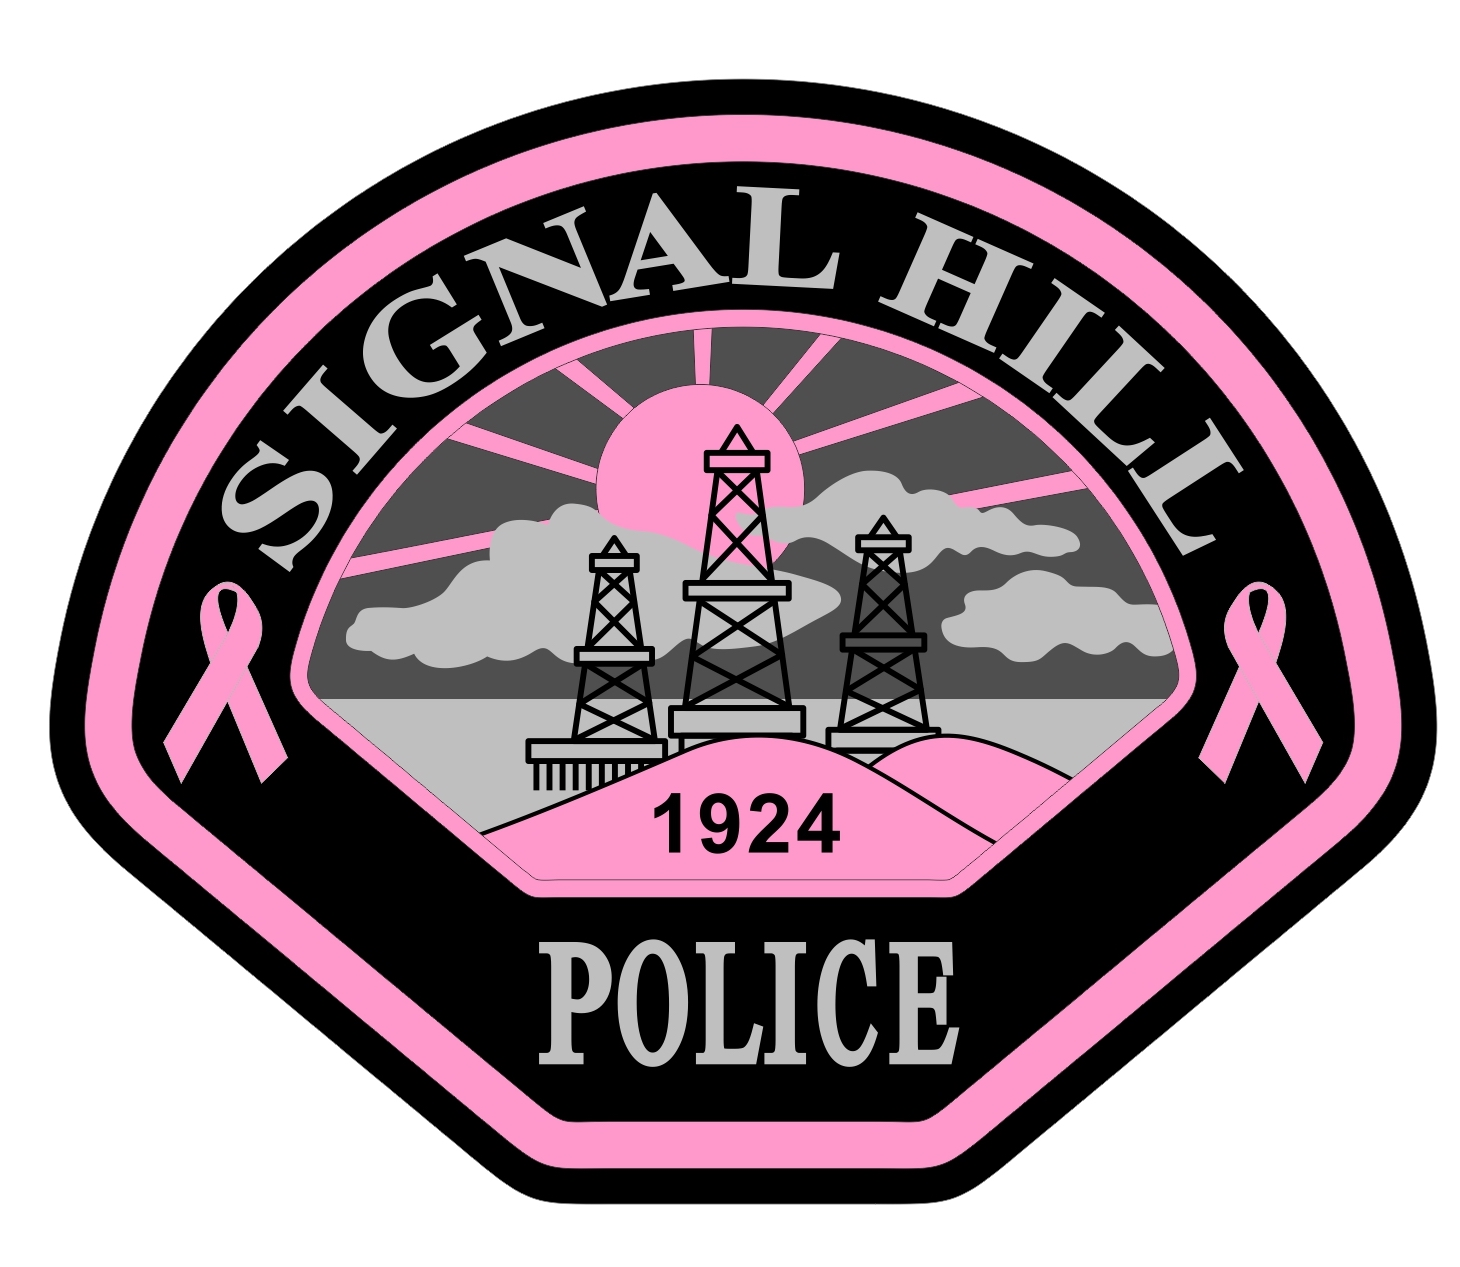 SIGNAL HILL POLICE (CA) - PINK PATCH 2017.jpg